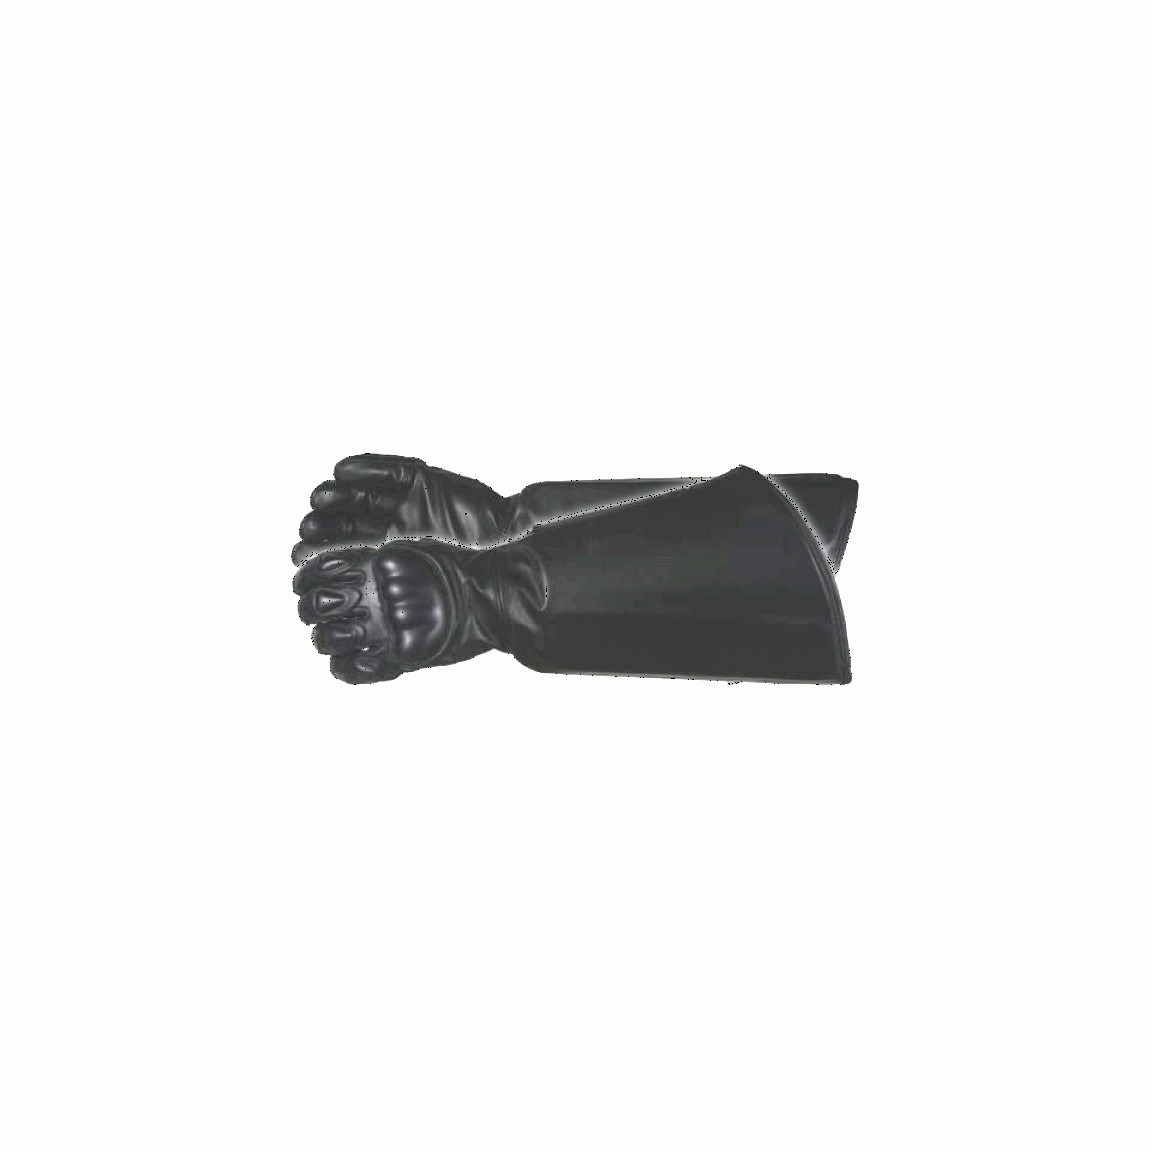 Damascus CRT 300 Vector 3 Gloves: Amazoncom Damascus Crt Vector Riot Control Gloves With Carbon